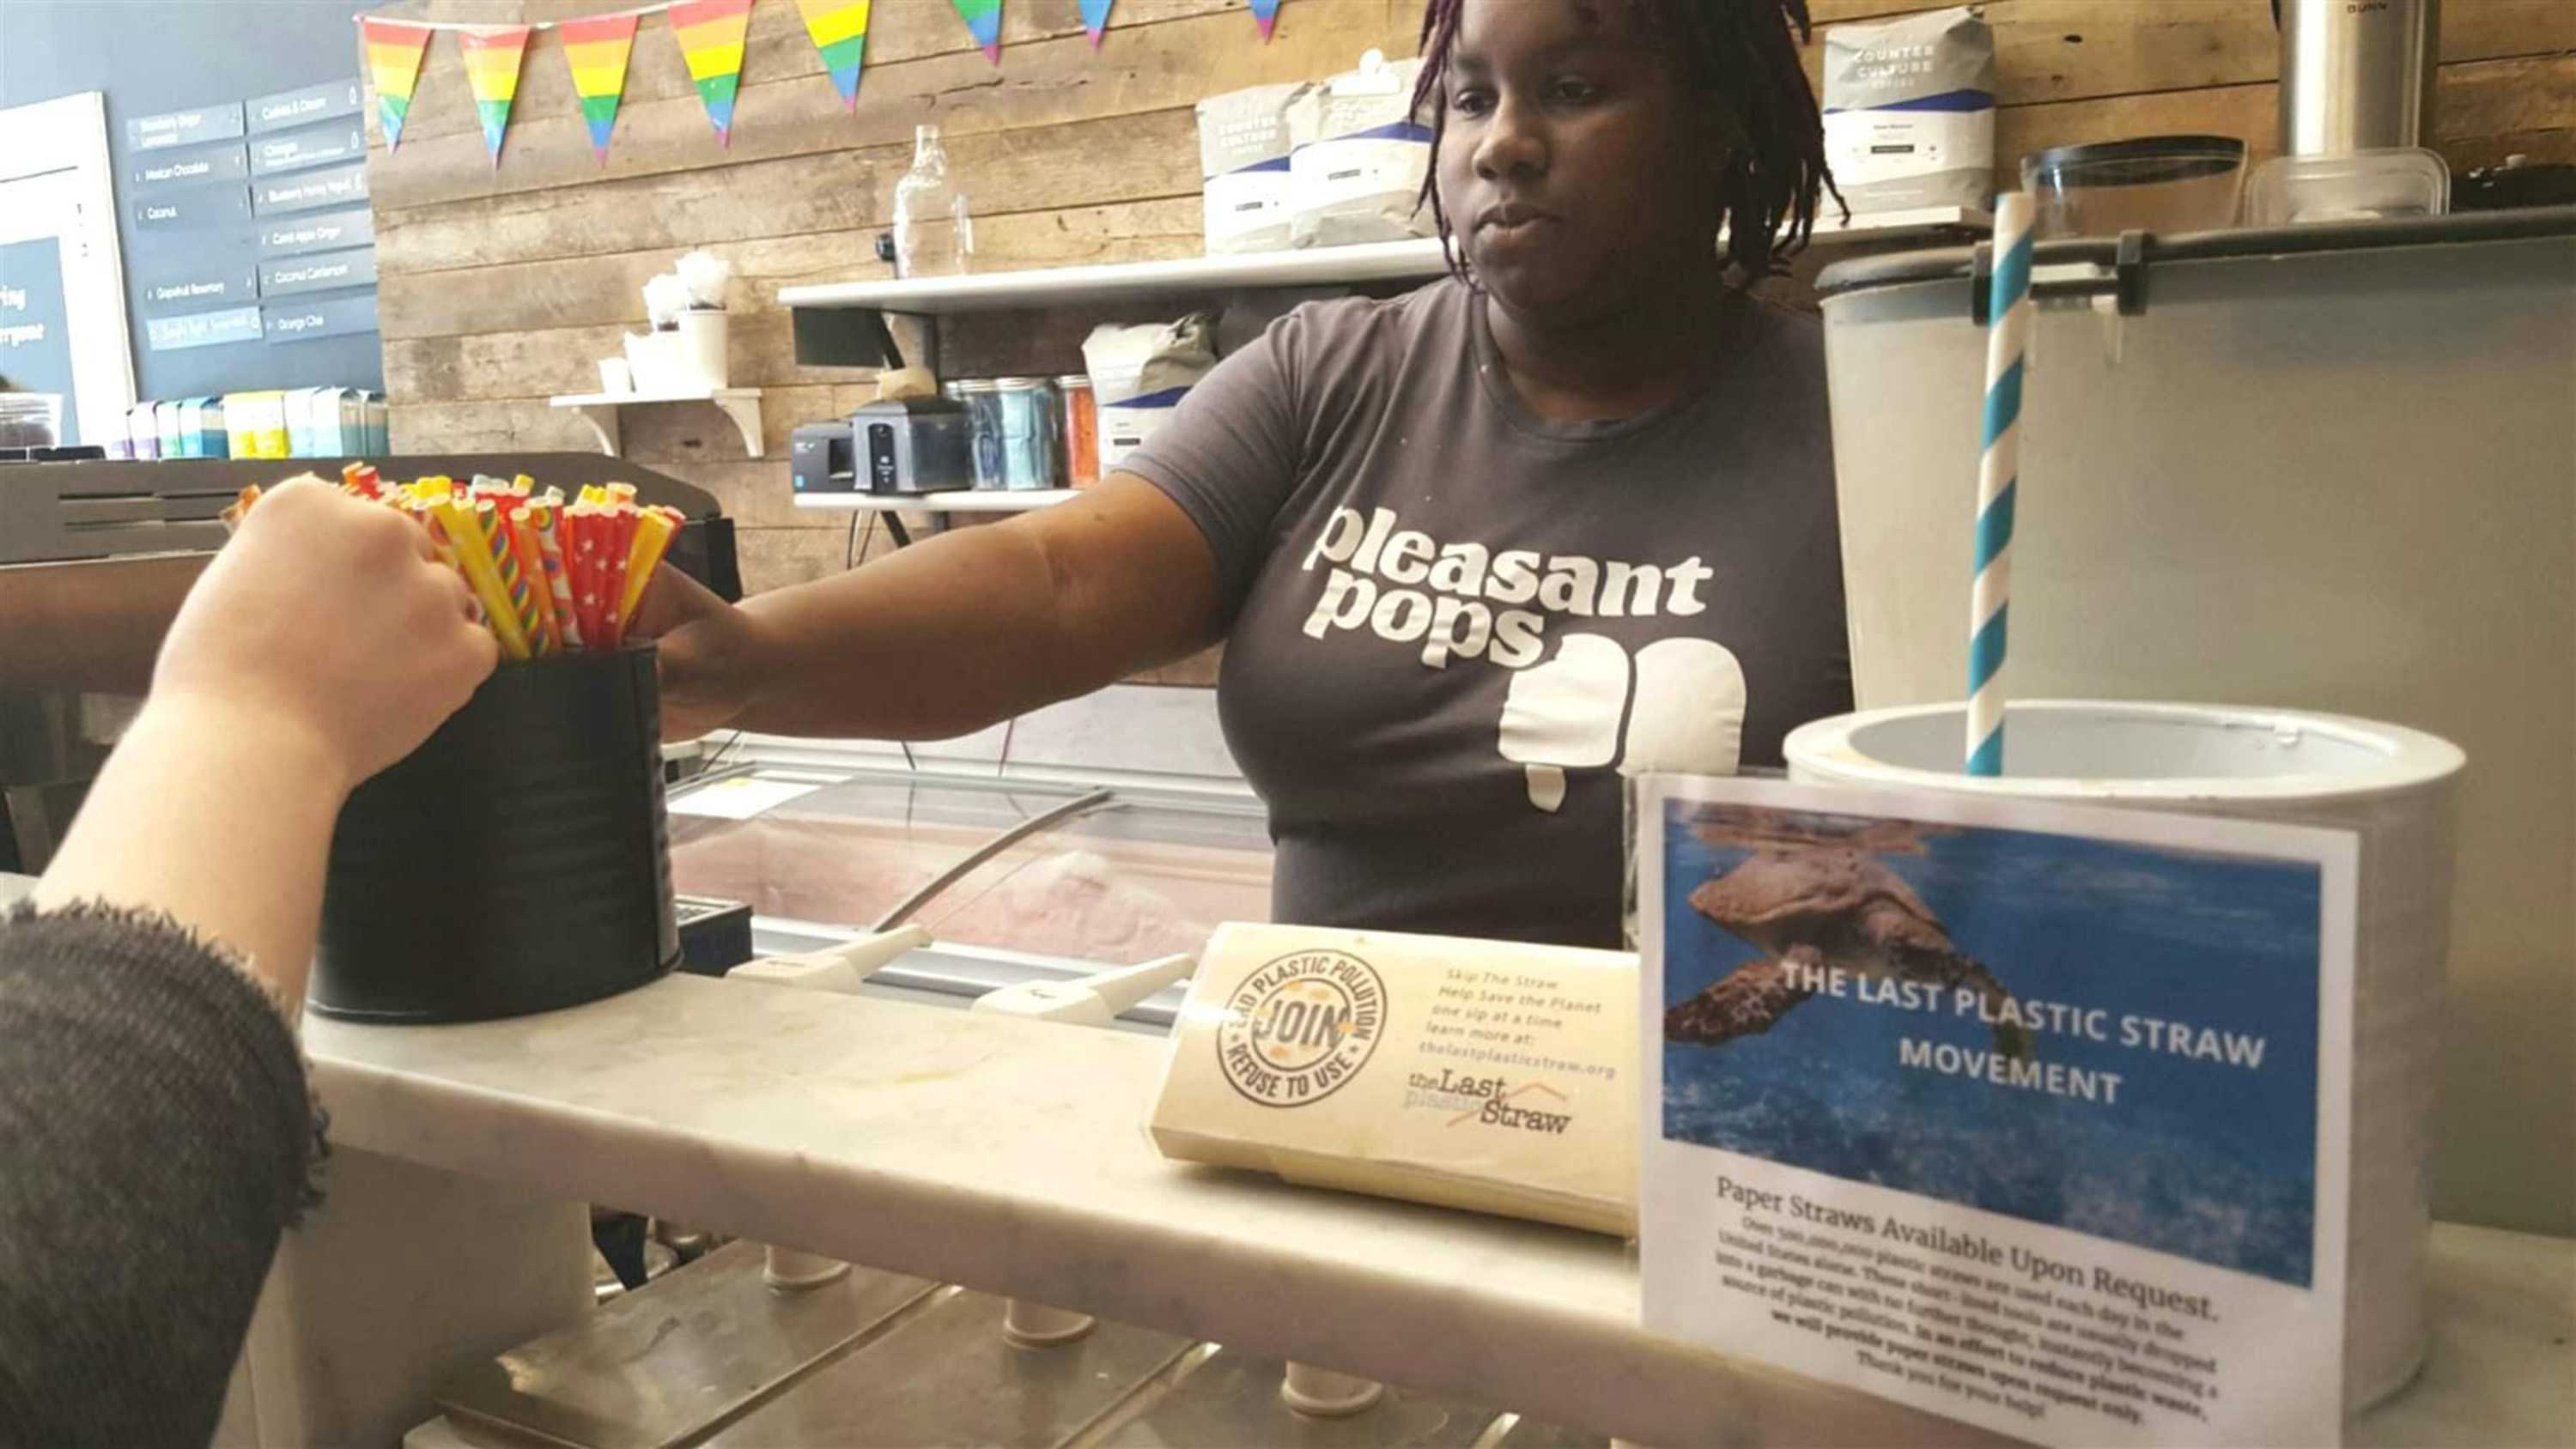 Rosario: Banning plastic straws is not the answer